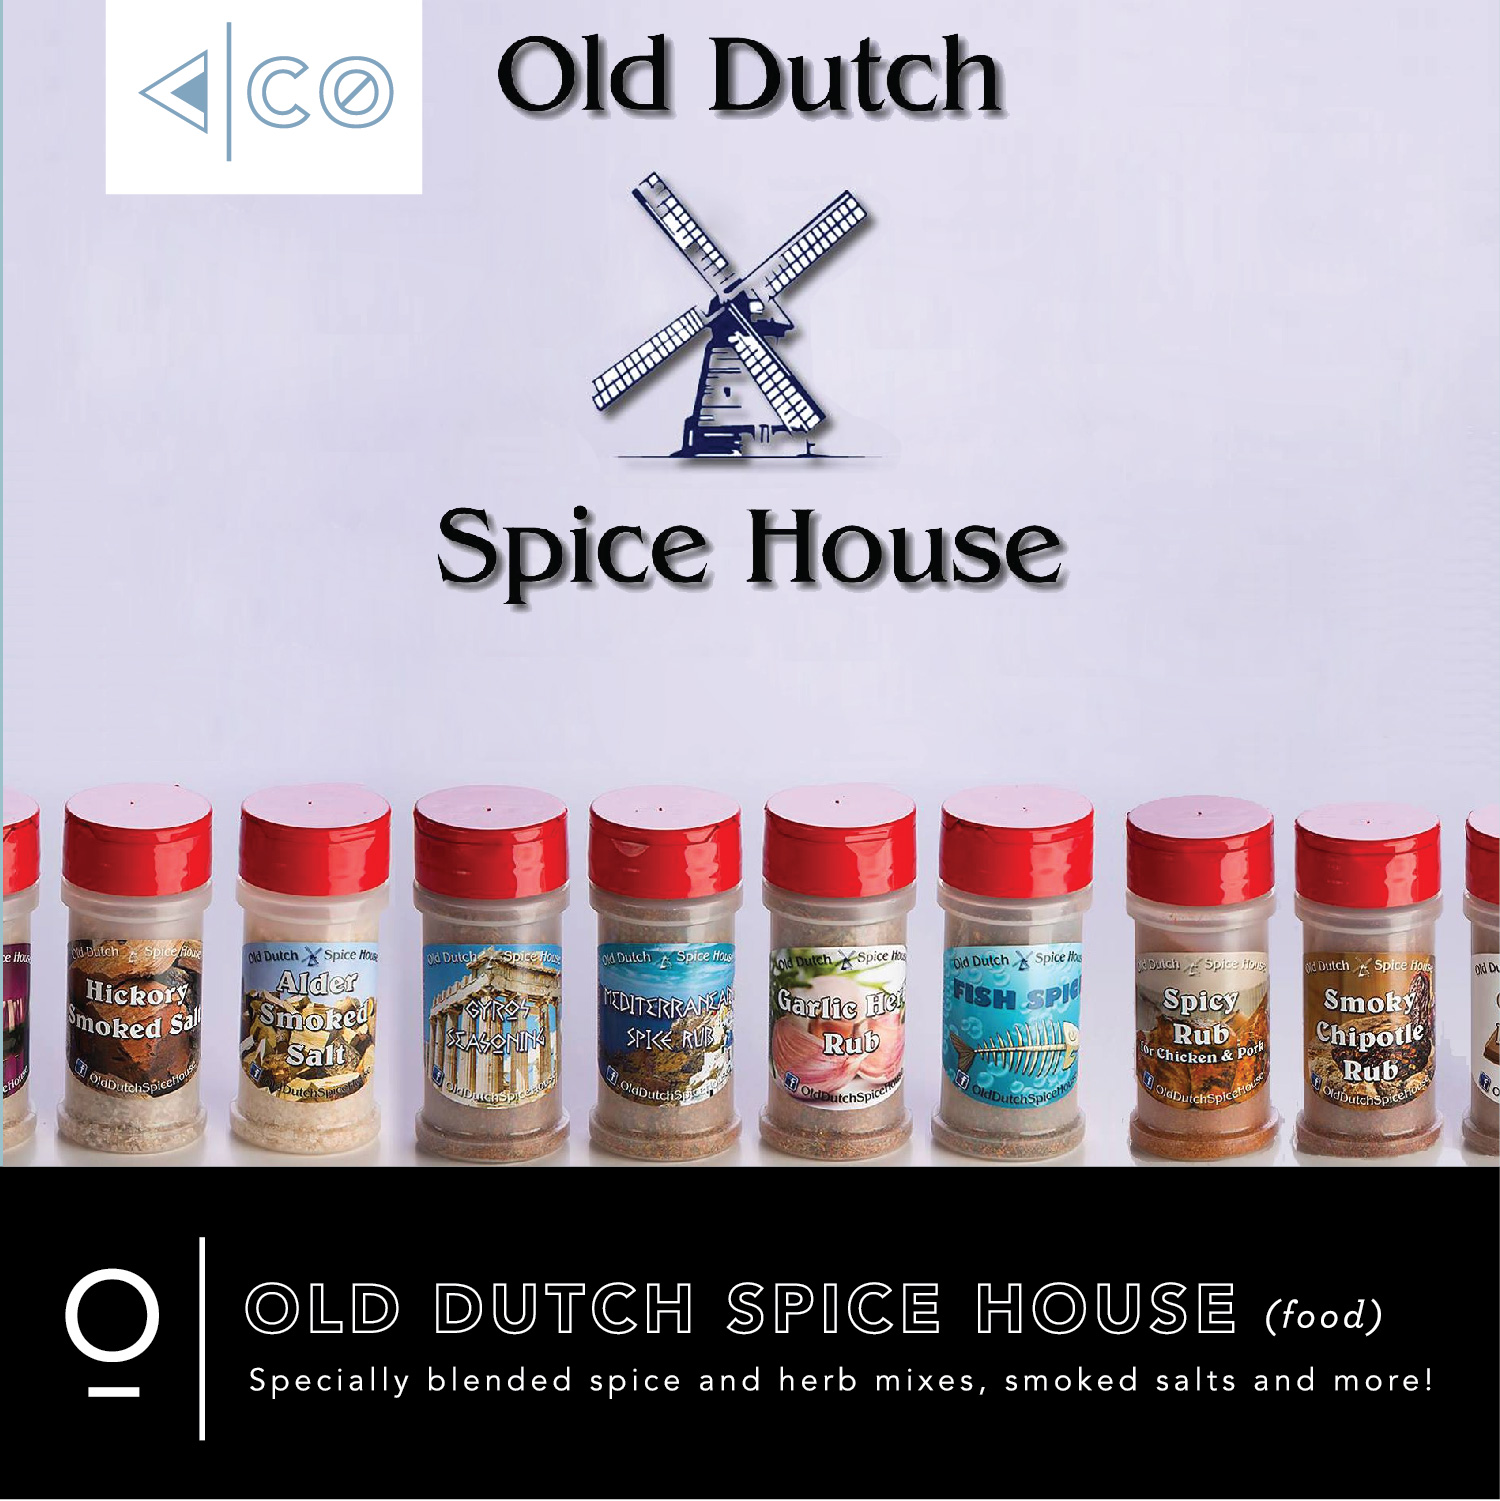 Old Dutch Spice House